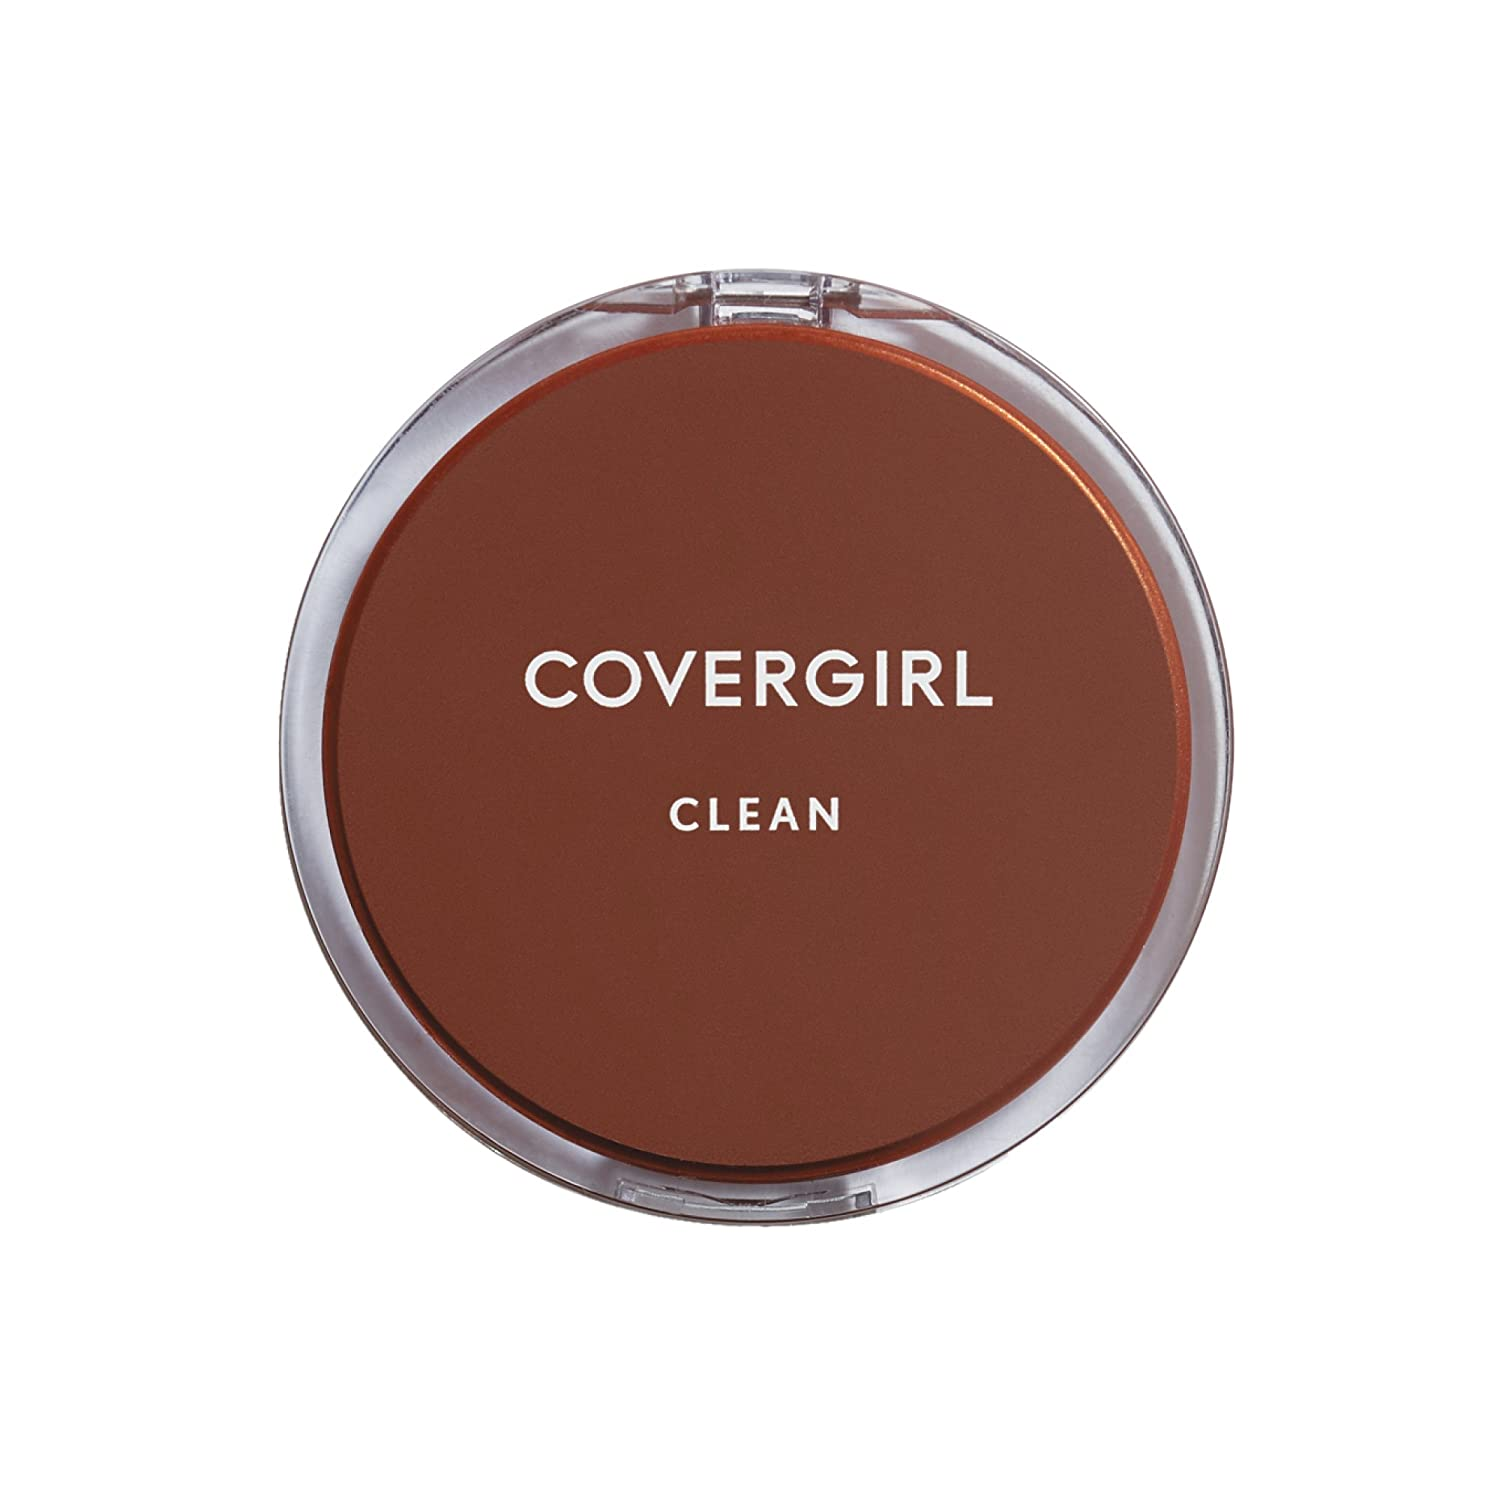 COVERGIRL - Clean Pressed Powder - Packaging May Vary Coty CGRMQ2211